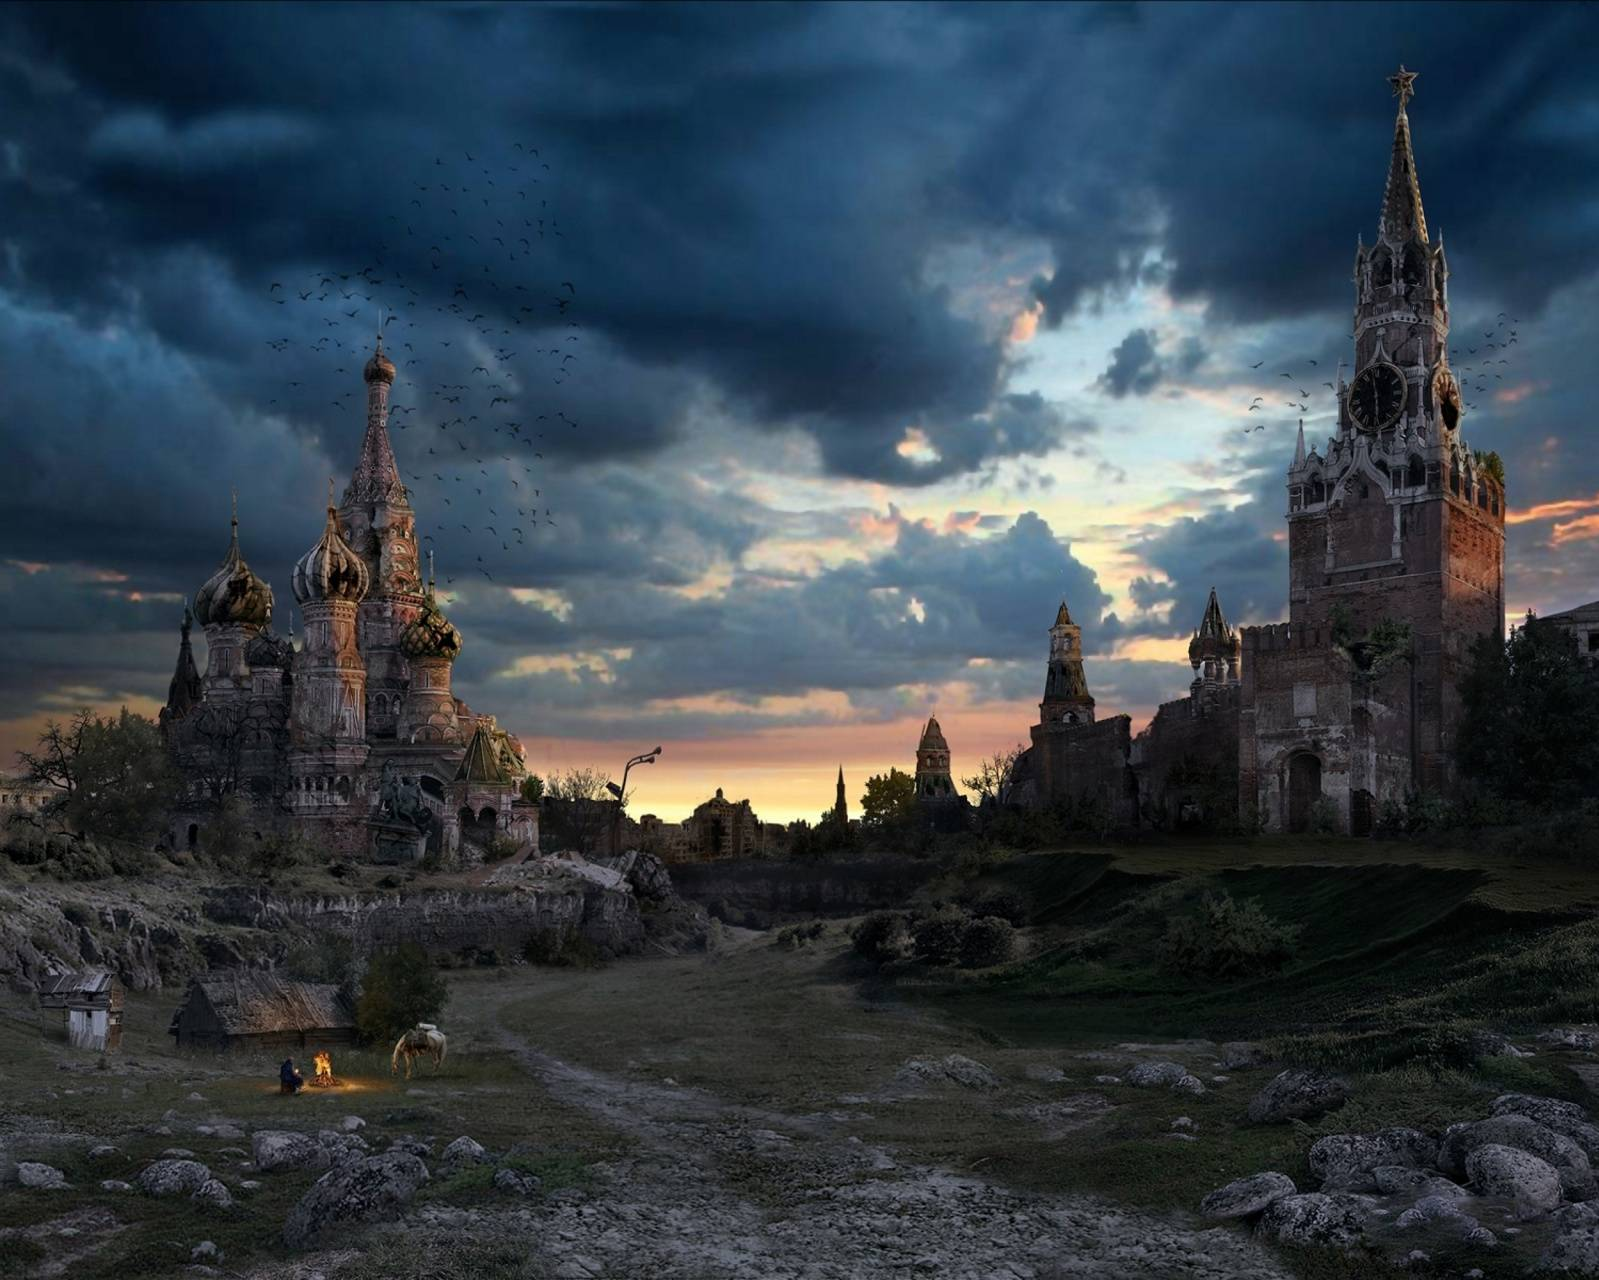 Moscow Castles